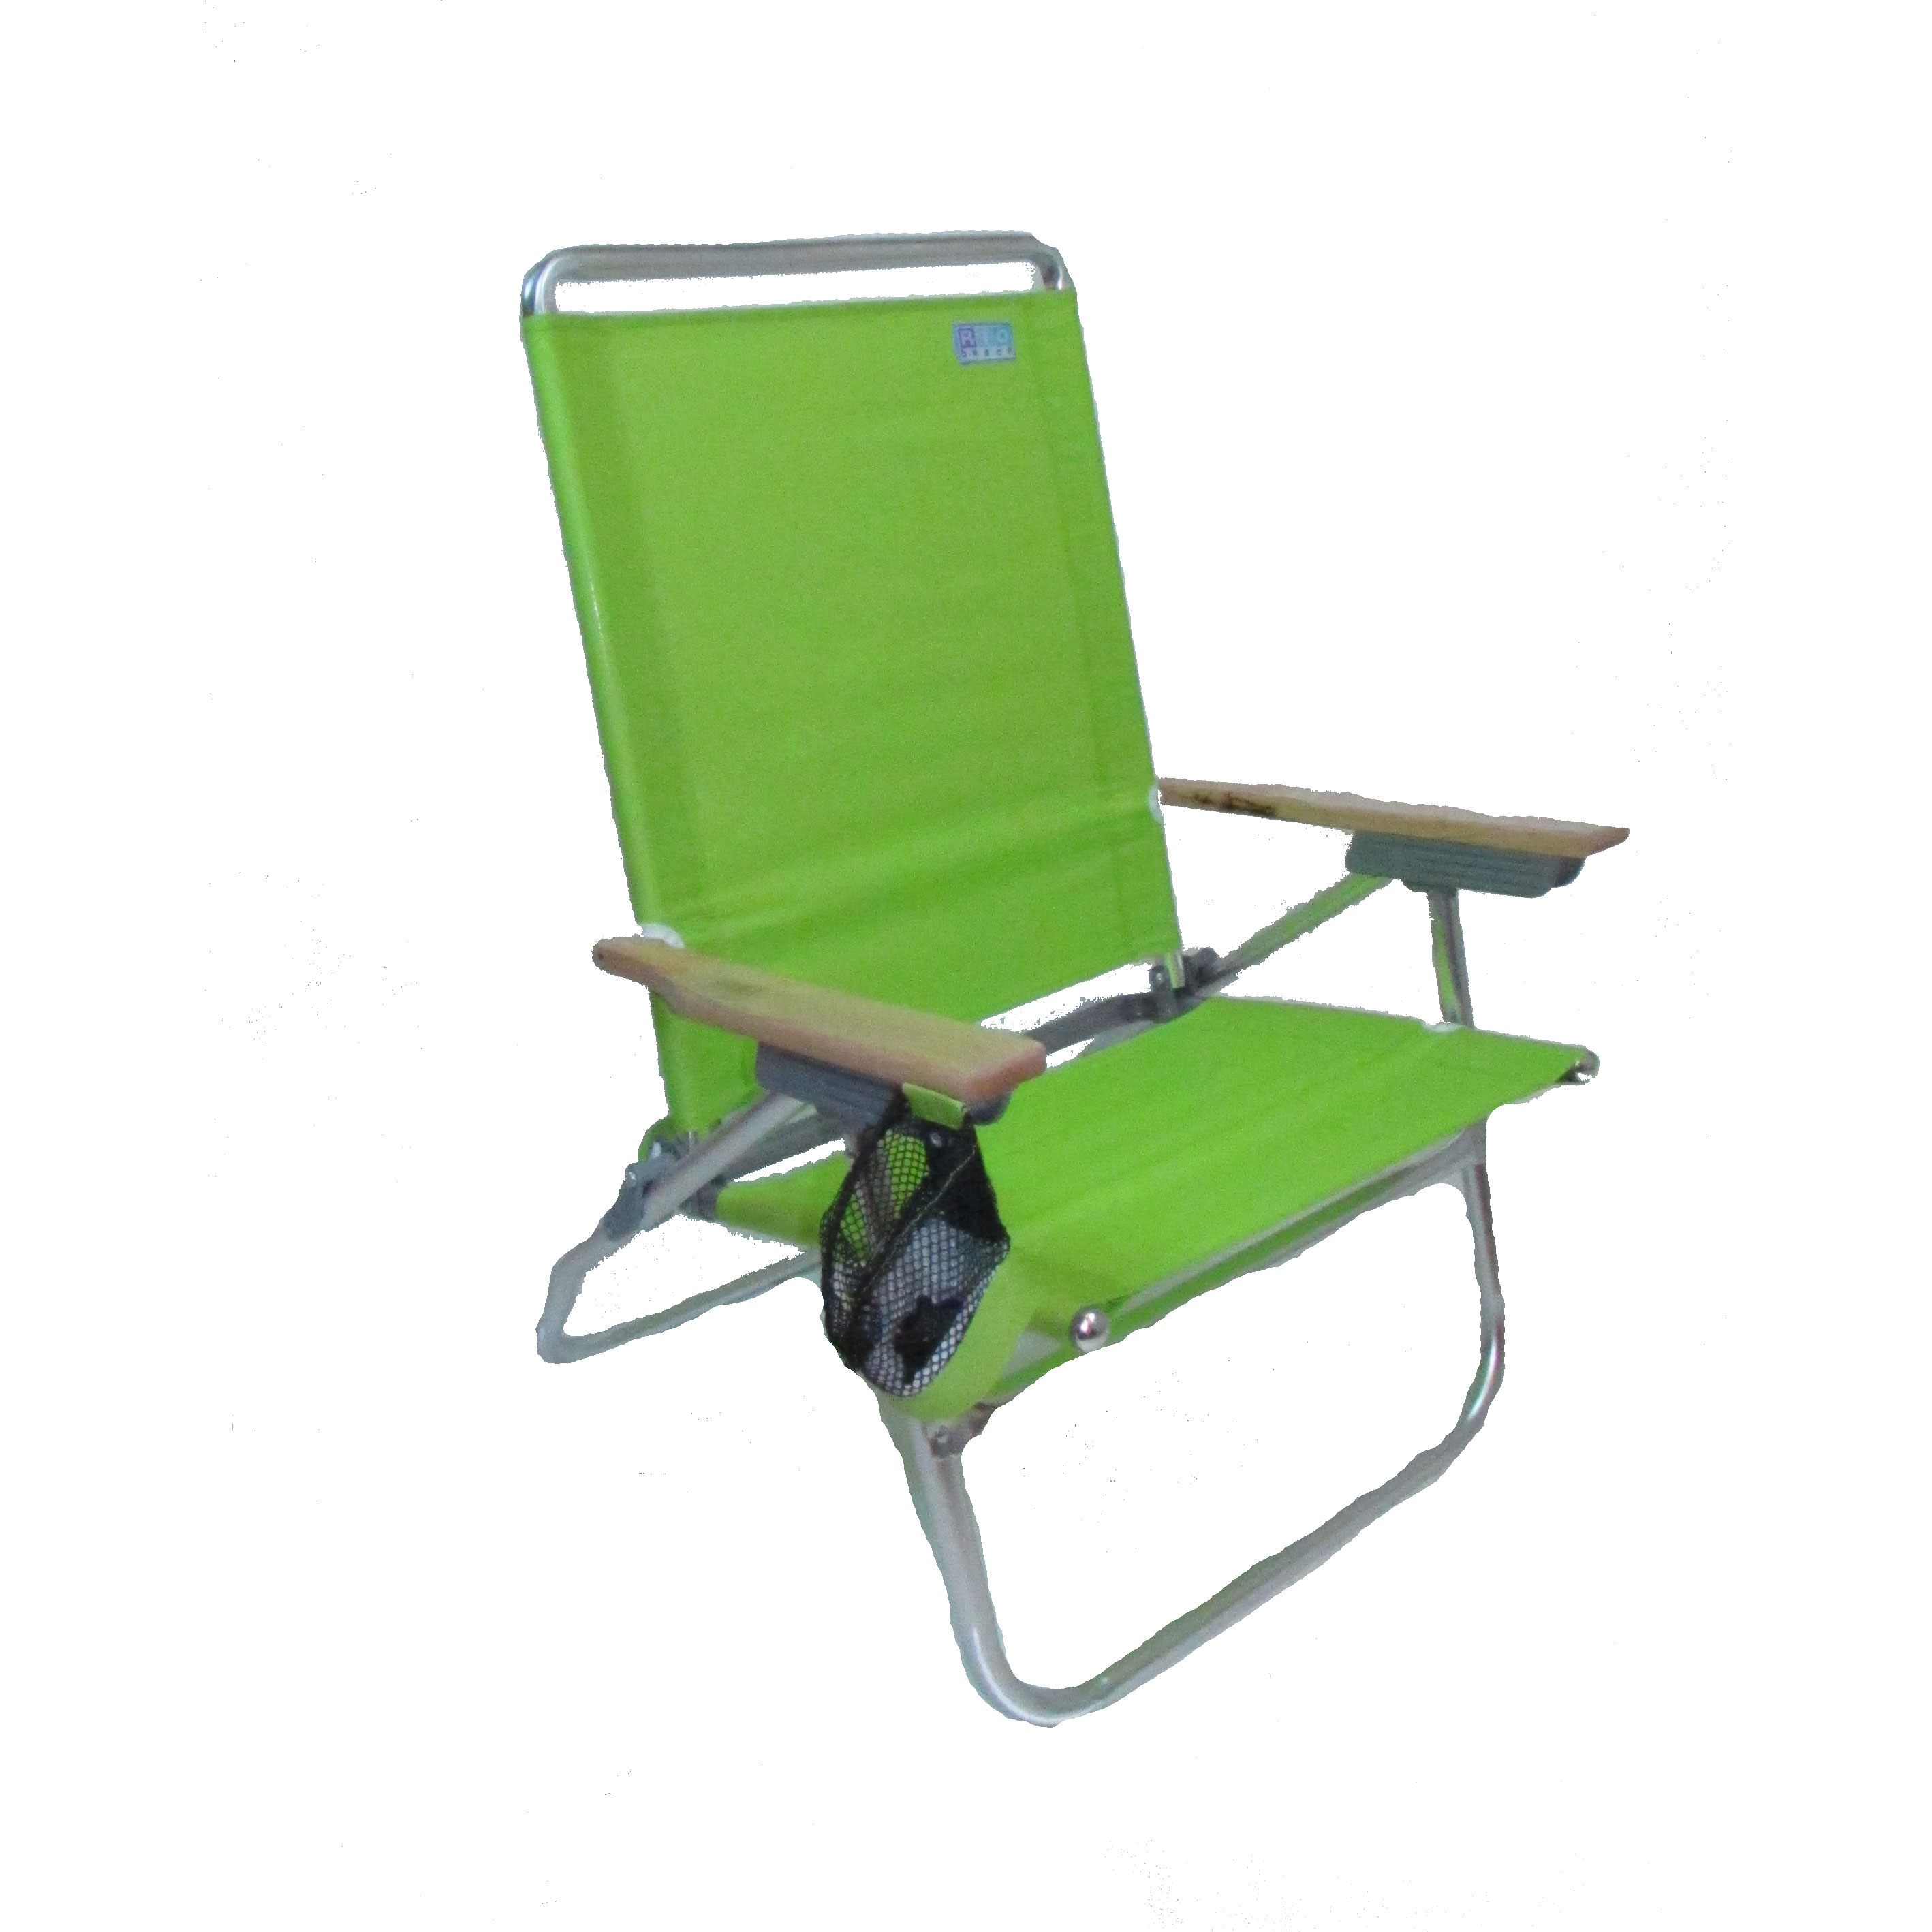 Pleasant The Rio Beach 4 Position Easy In Easy Out Beach Chair Gamerscity Chair Design For Home Gamerscityorg